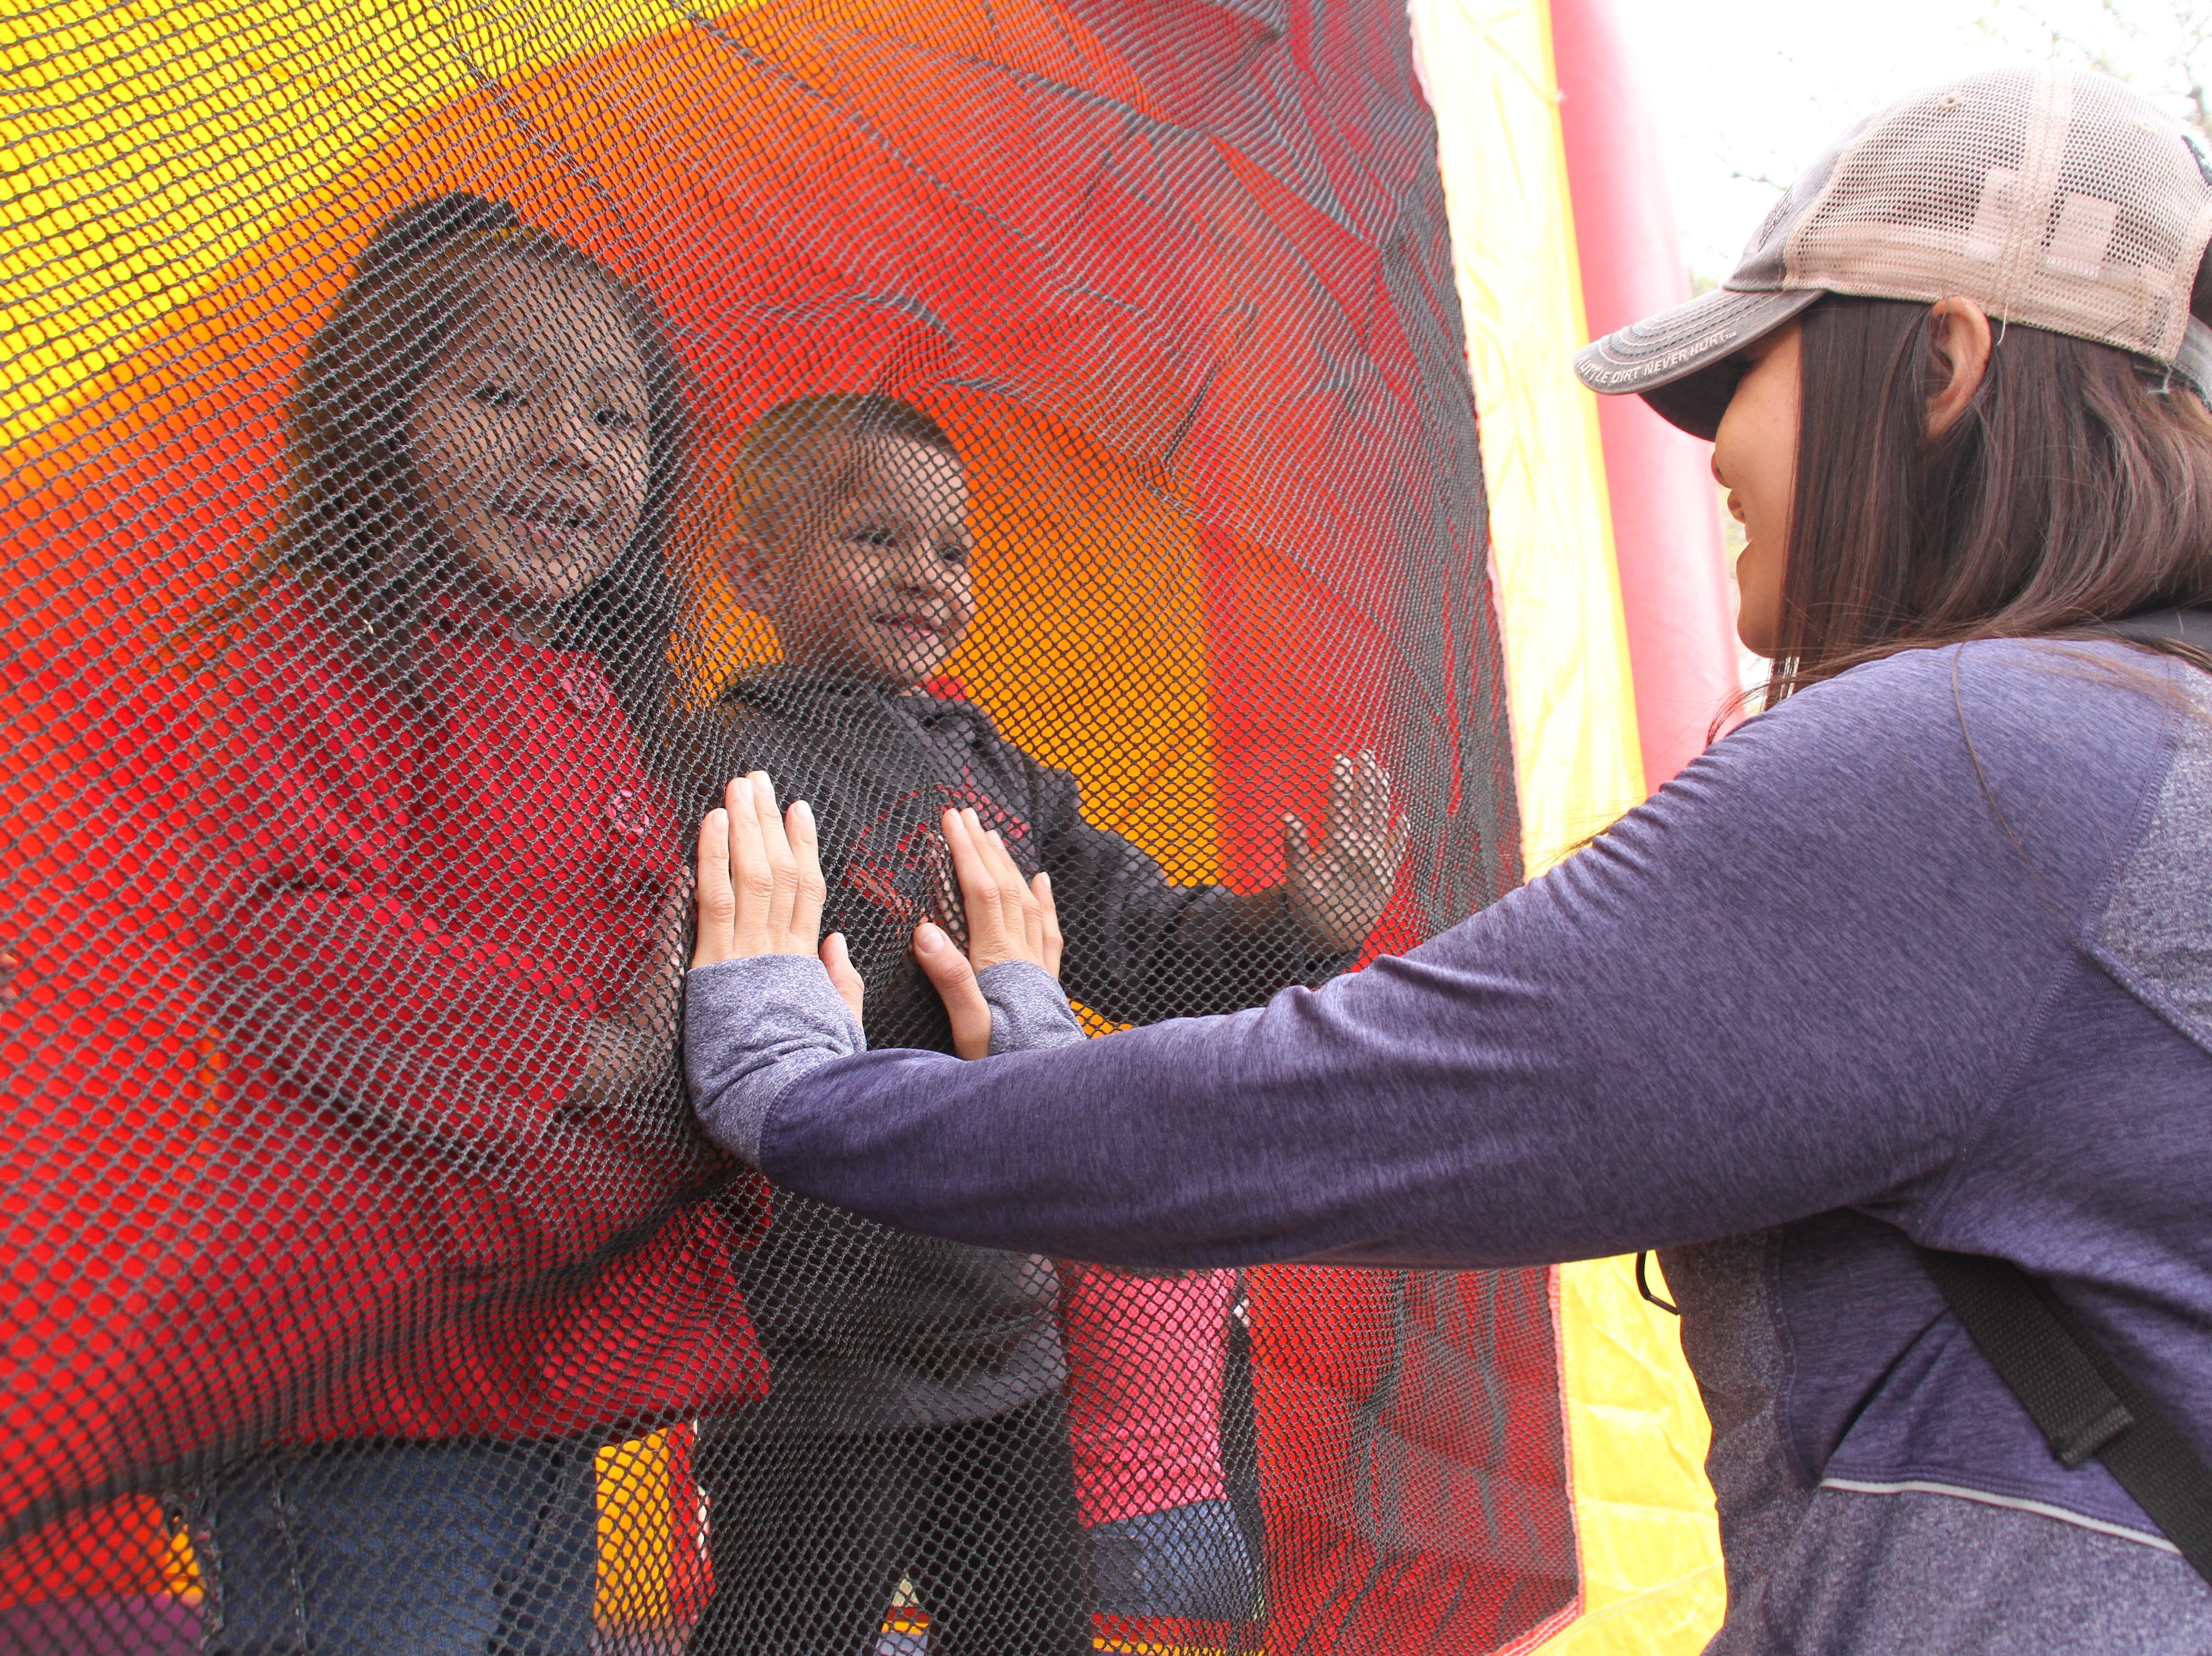 Christina Benzor has her children, Ali Enciso, 5, and Luis Jara, 5, meet her hands as they jump in the inflatable bounce house.